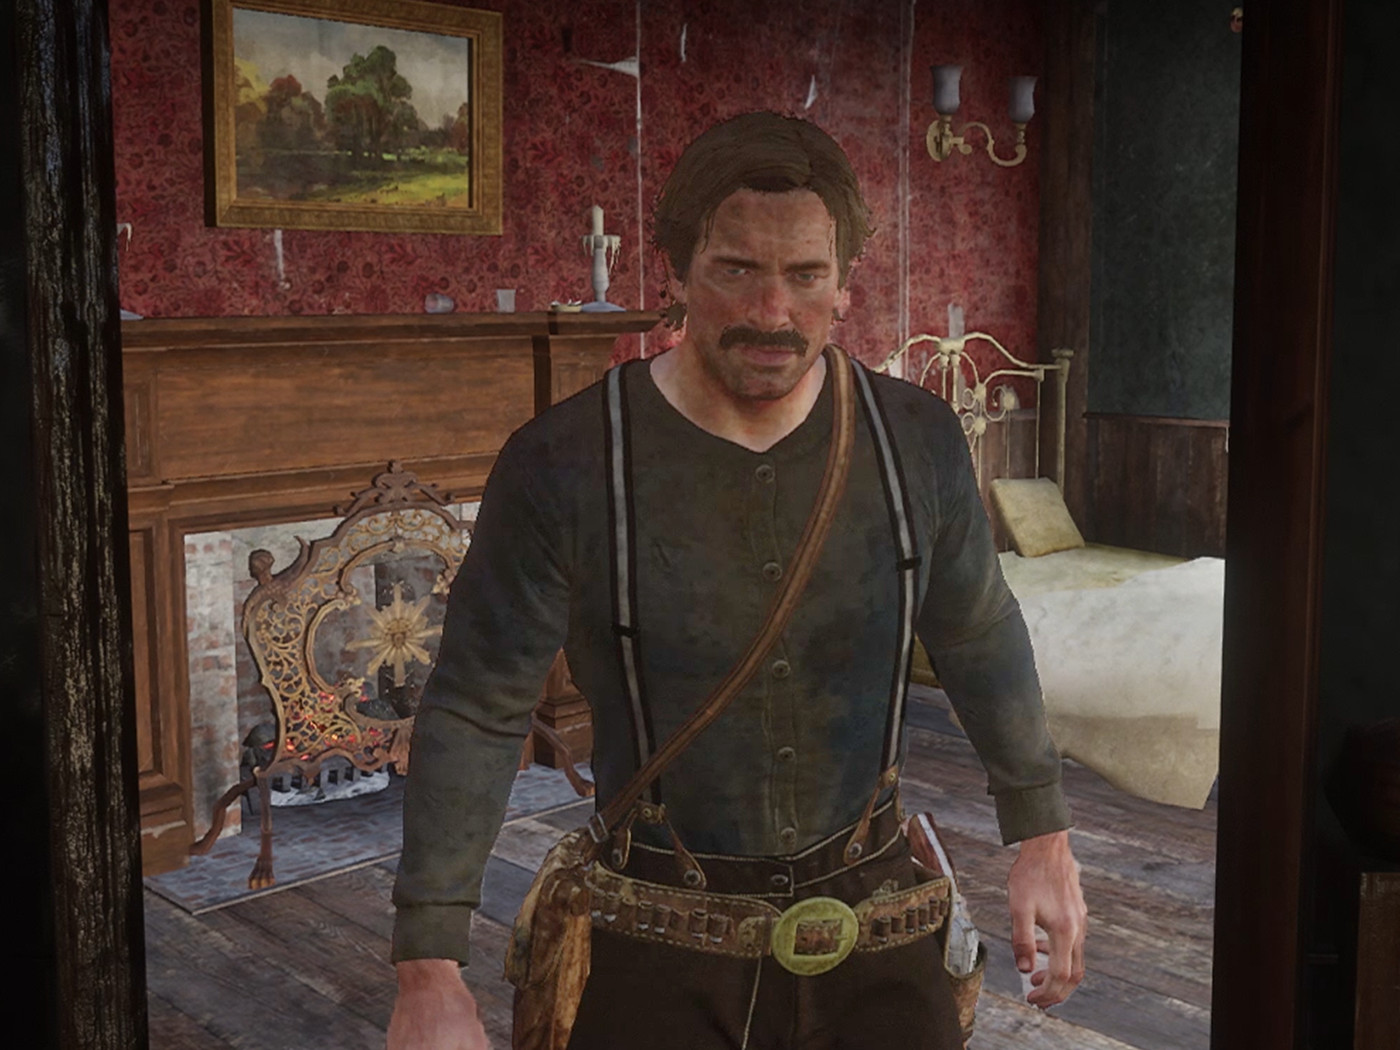 Red Dead Redemption 2's Arthur Morgan does not like the man in the